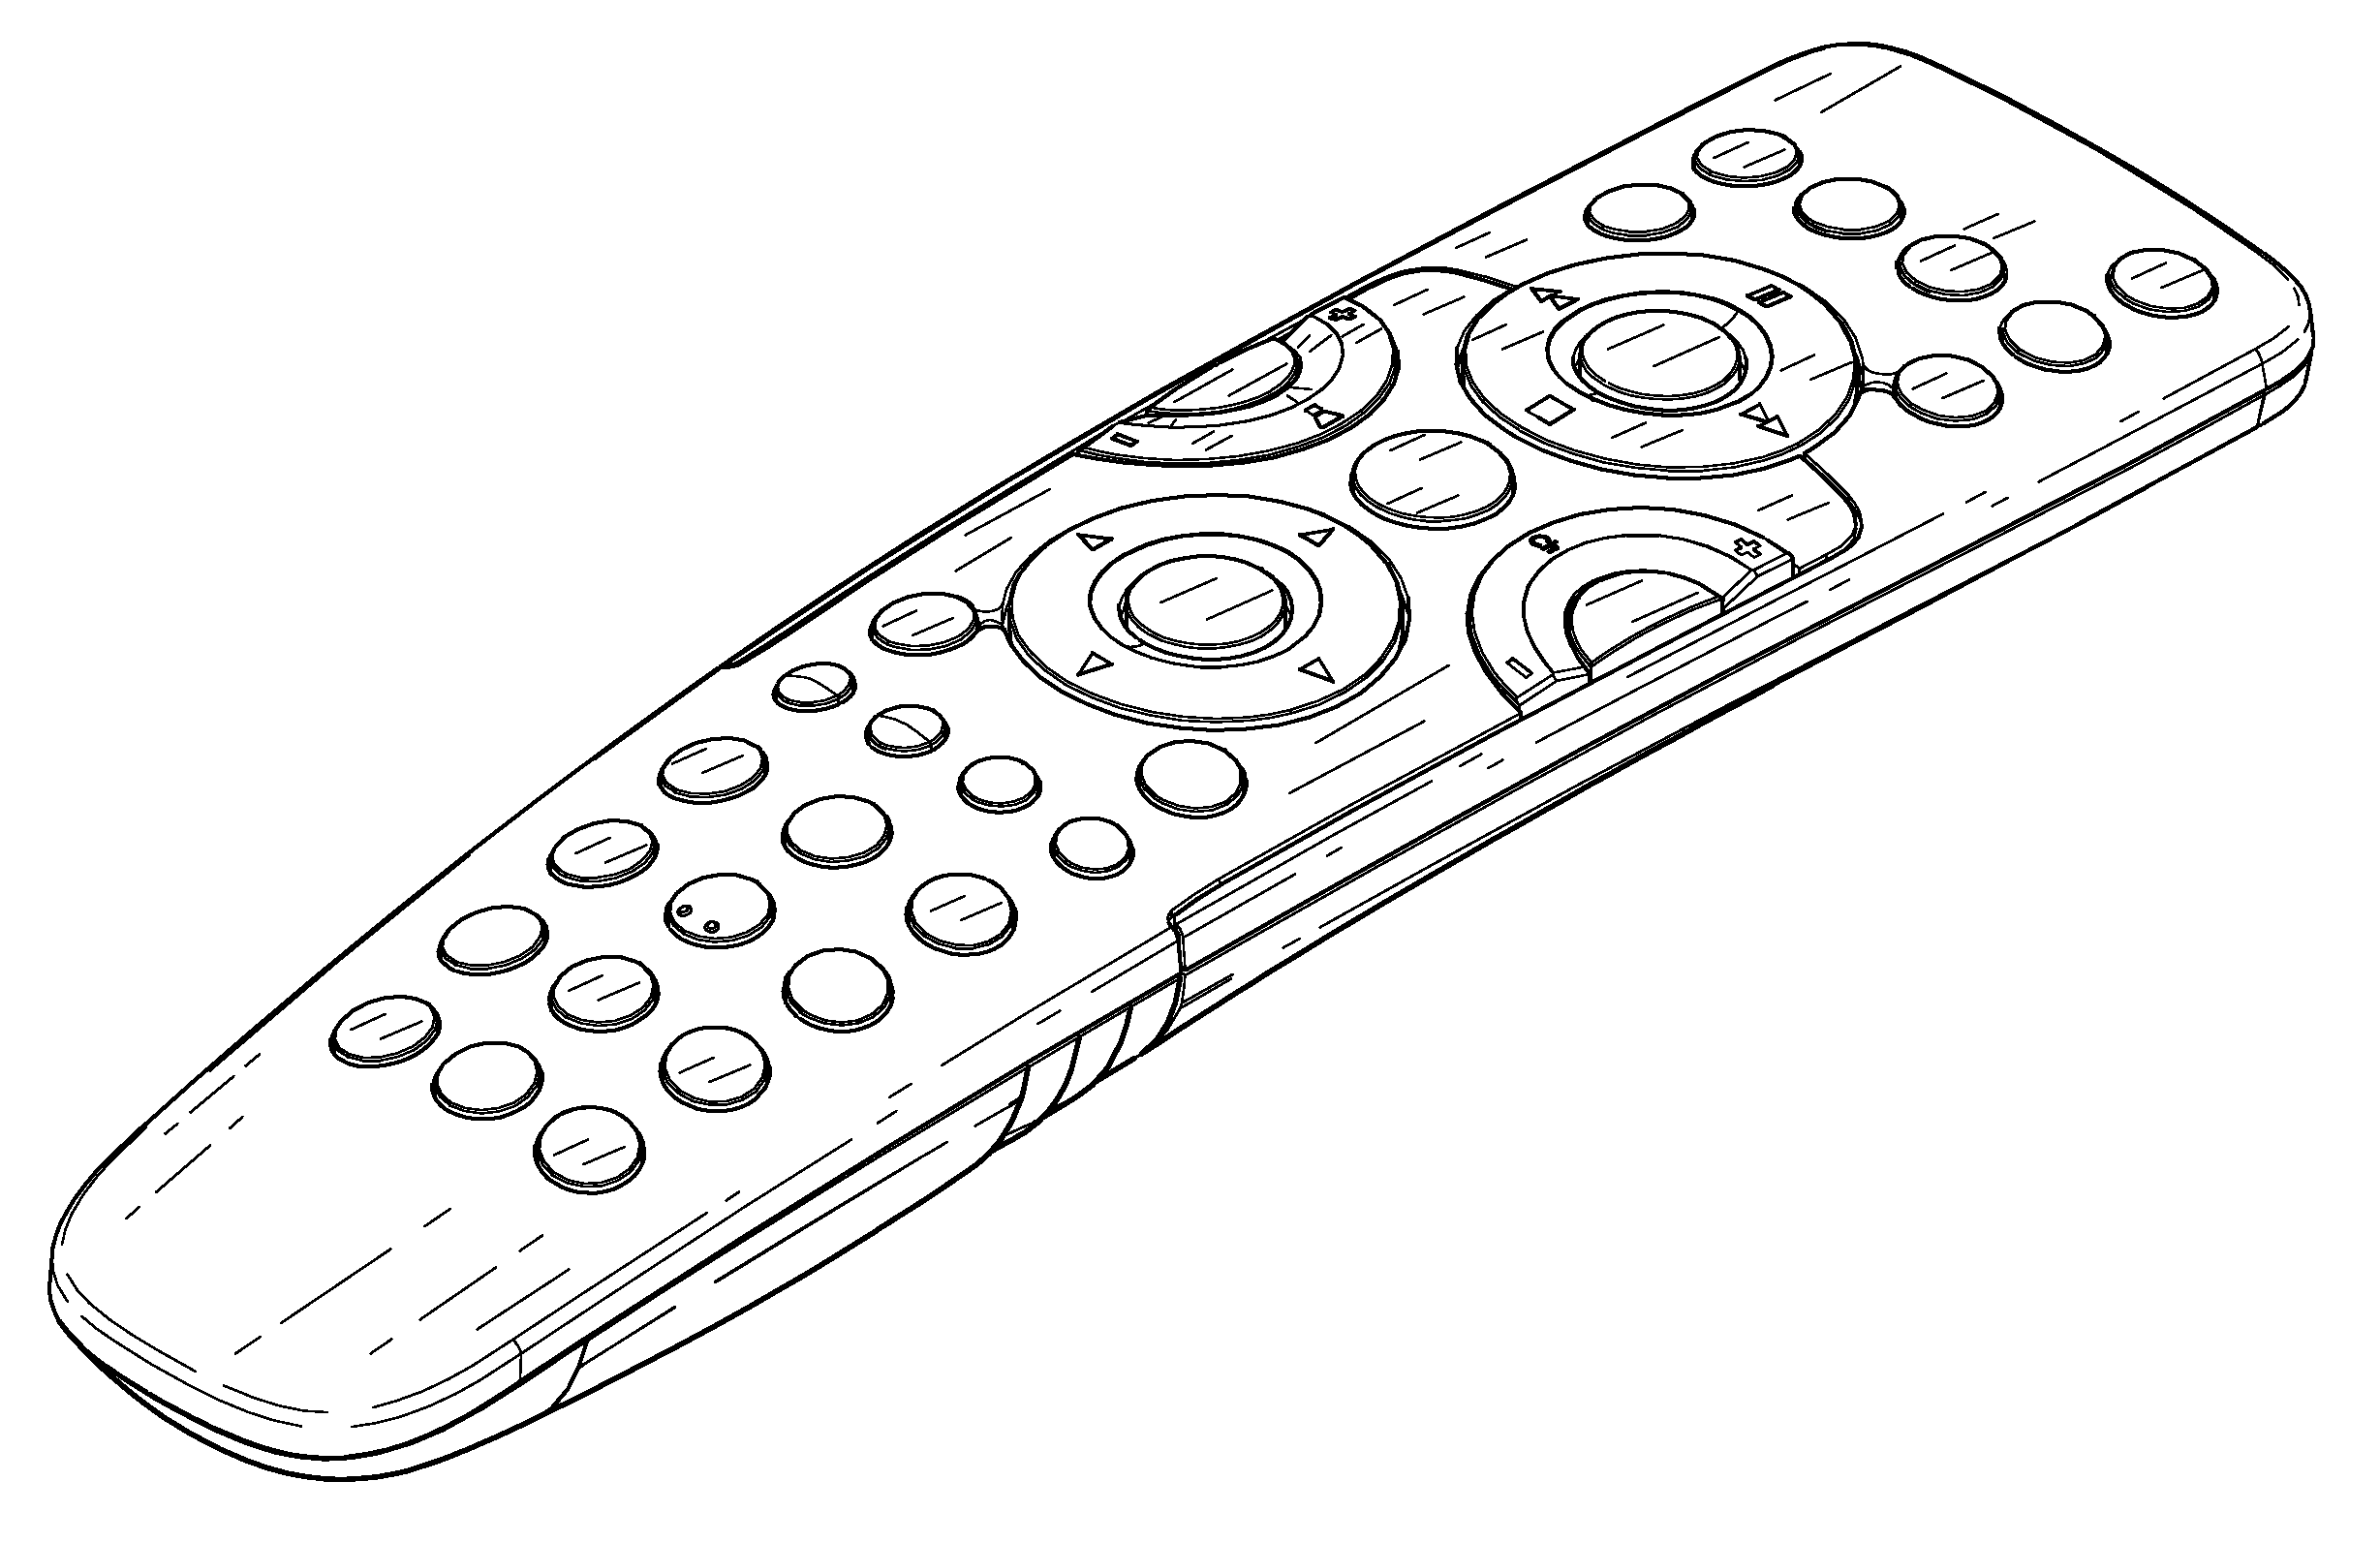 remote control drawing. patent drawing remote control o